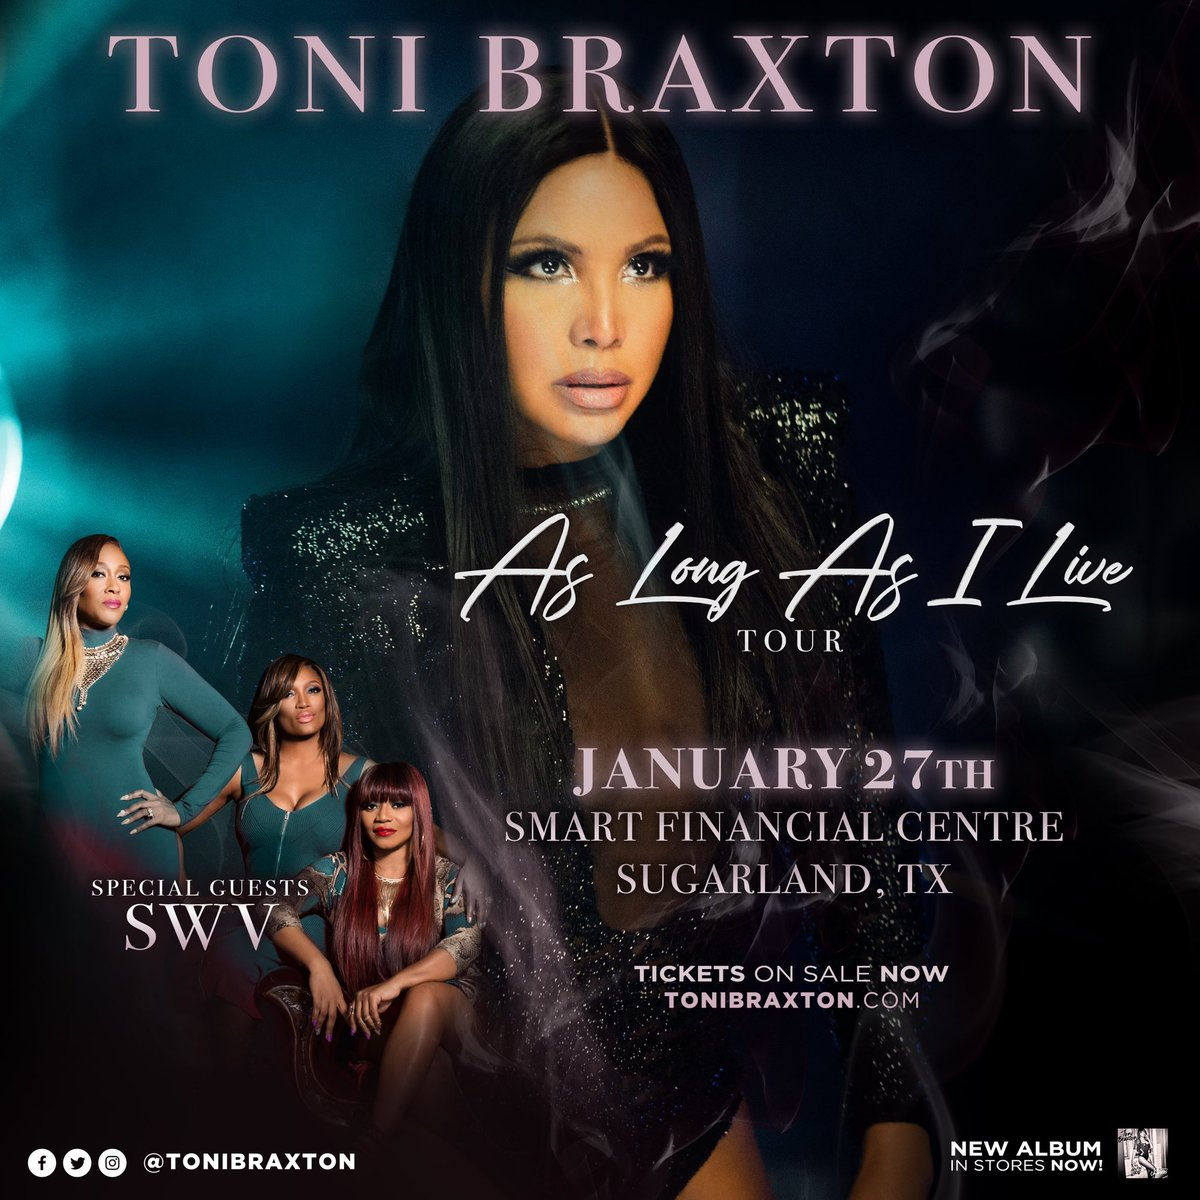 SUGARLAND, TX! RT if you'll be in the building TOMORROW!????????#AsLongAsILiveTour https://t.co/vfDquyMhpn